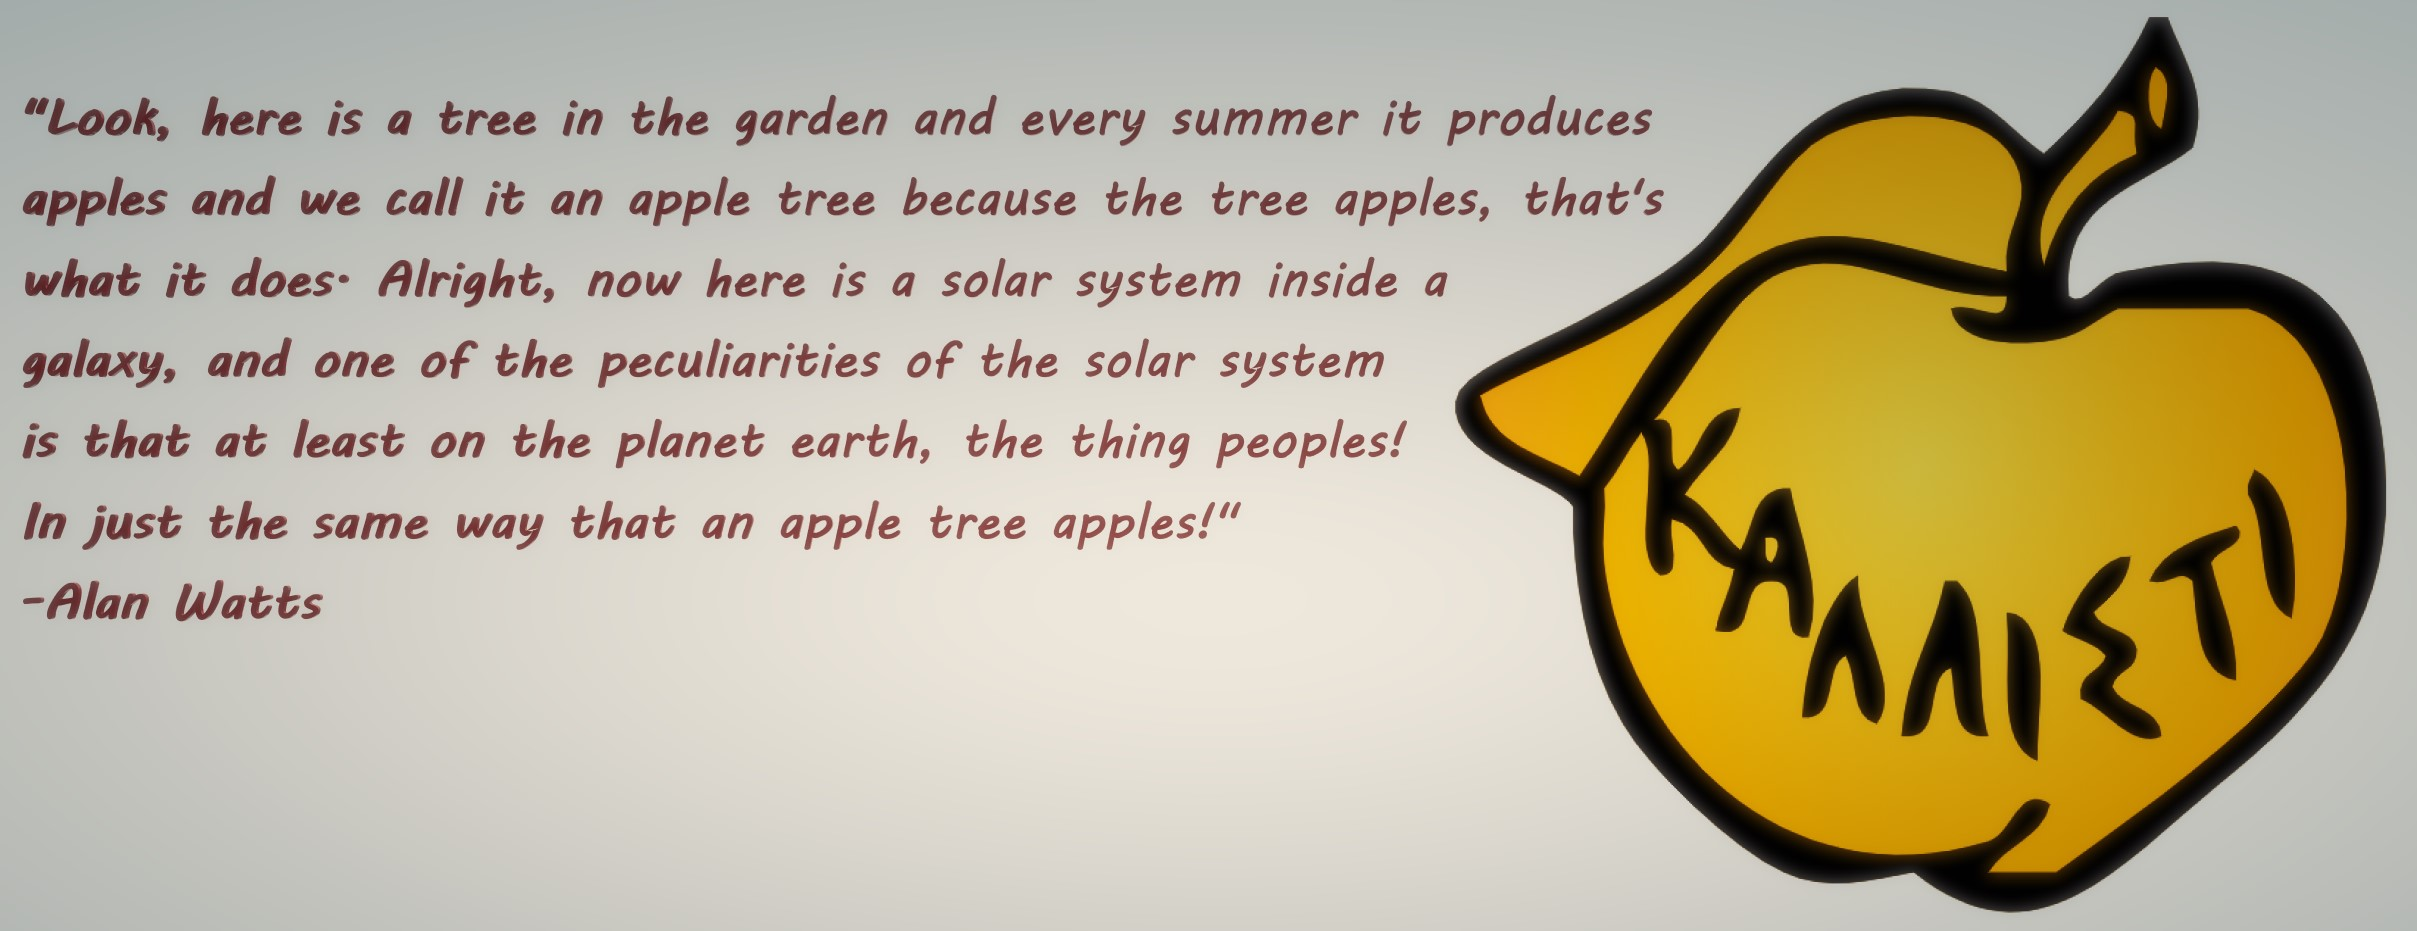 """Here is a tree in the garden and every summer it produces apples and we call it an apple tree because the tree apples […] now here is a solar system inside a galaxy and one of the peculiarities of the solar system is that at least on the planet earth, the thing peoples!"" -Alan Watts [2417×931]"